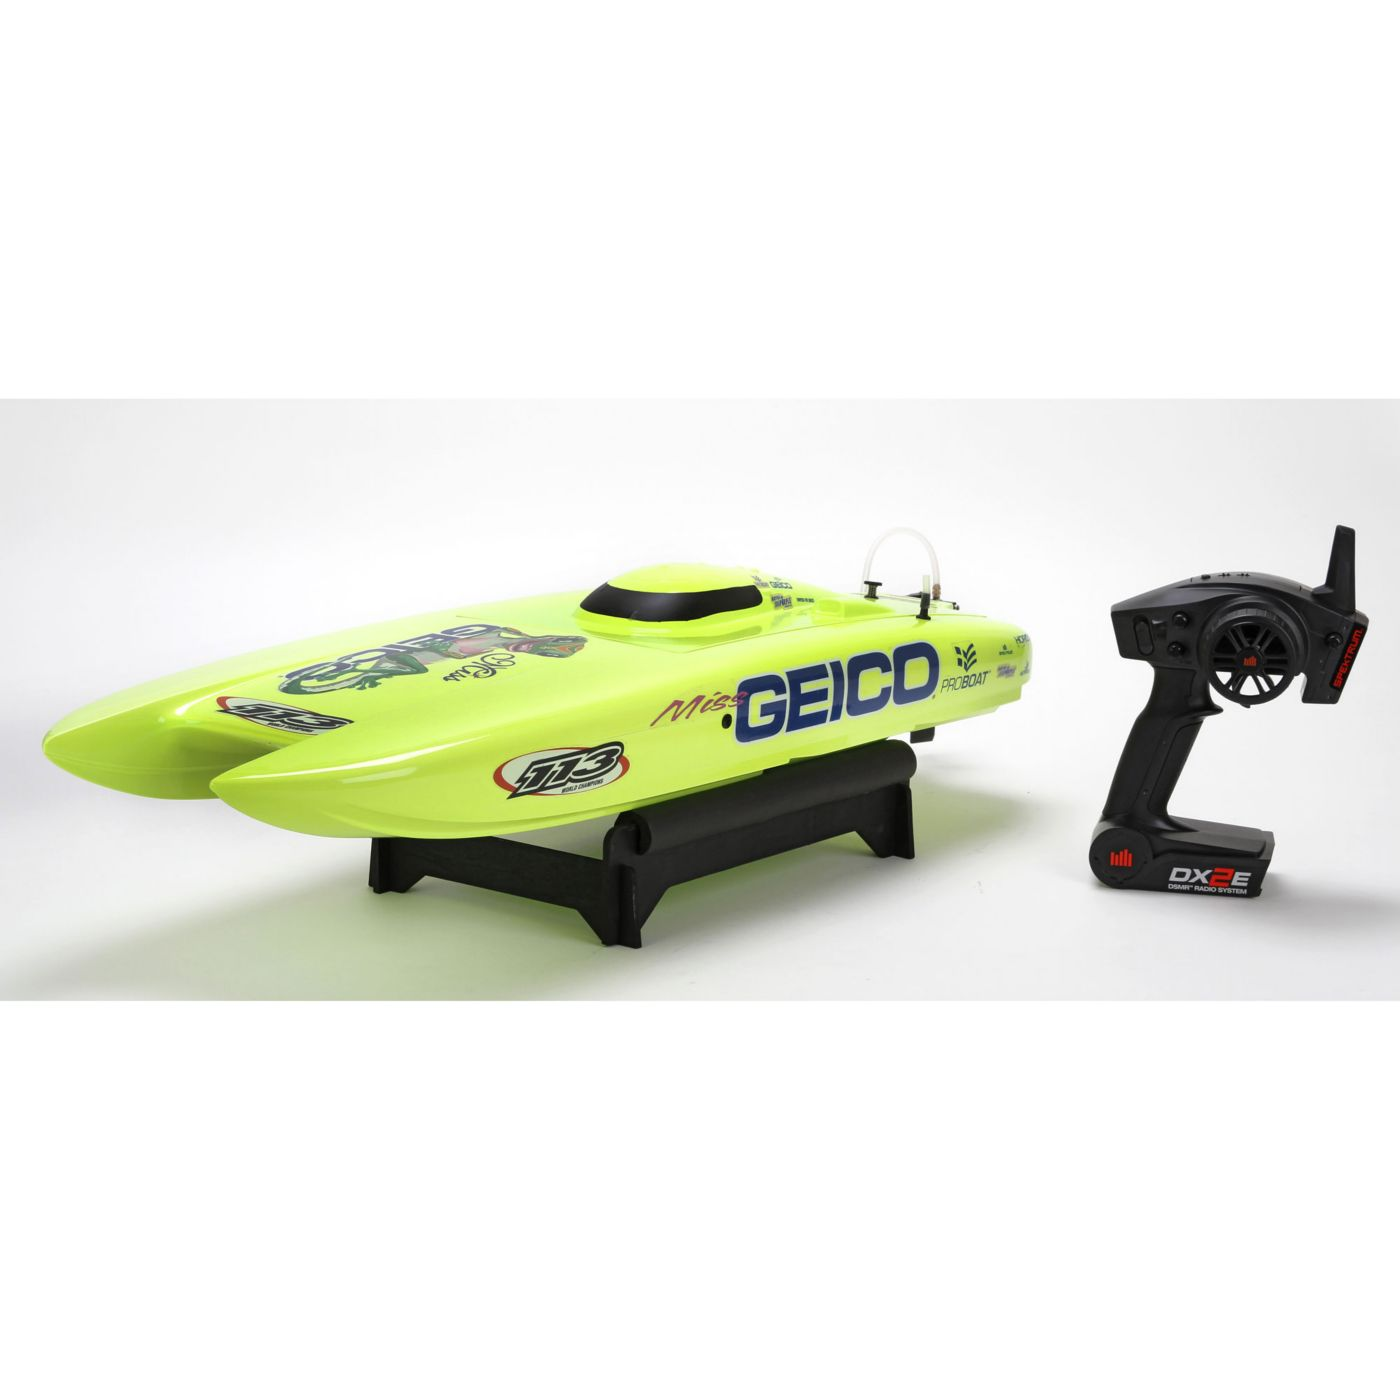 ProBoat PRB08009 - Miss Geico 29-inch Catamaran V3 Brushless